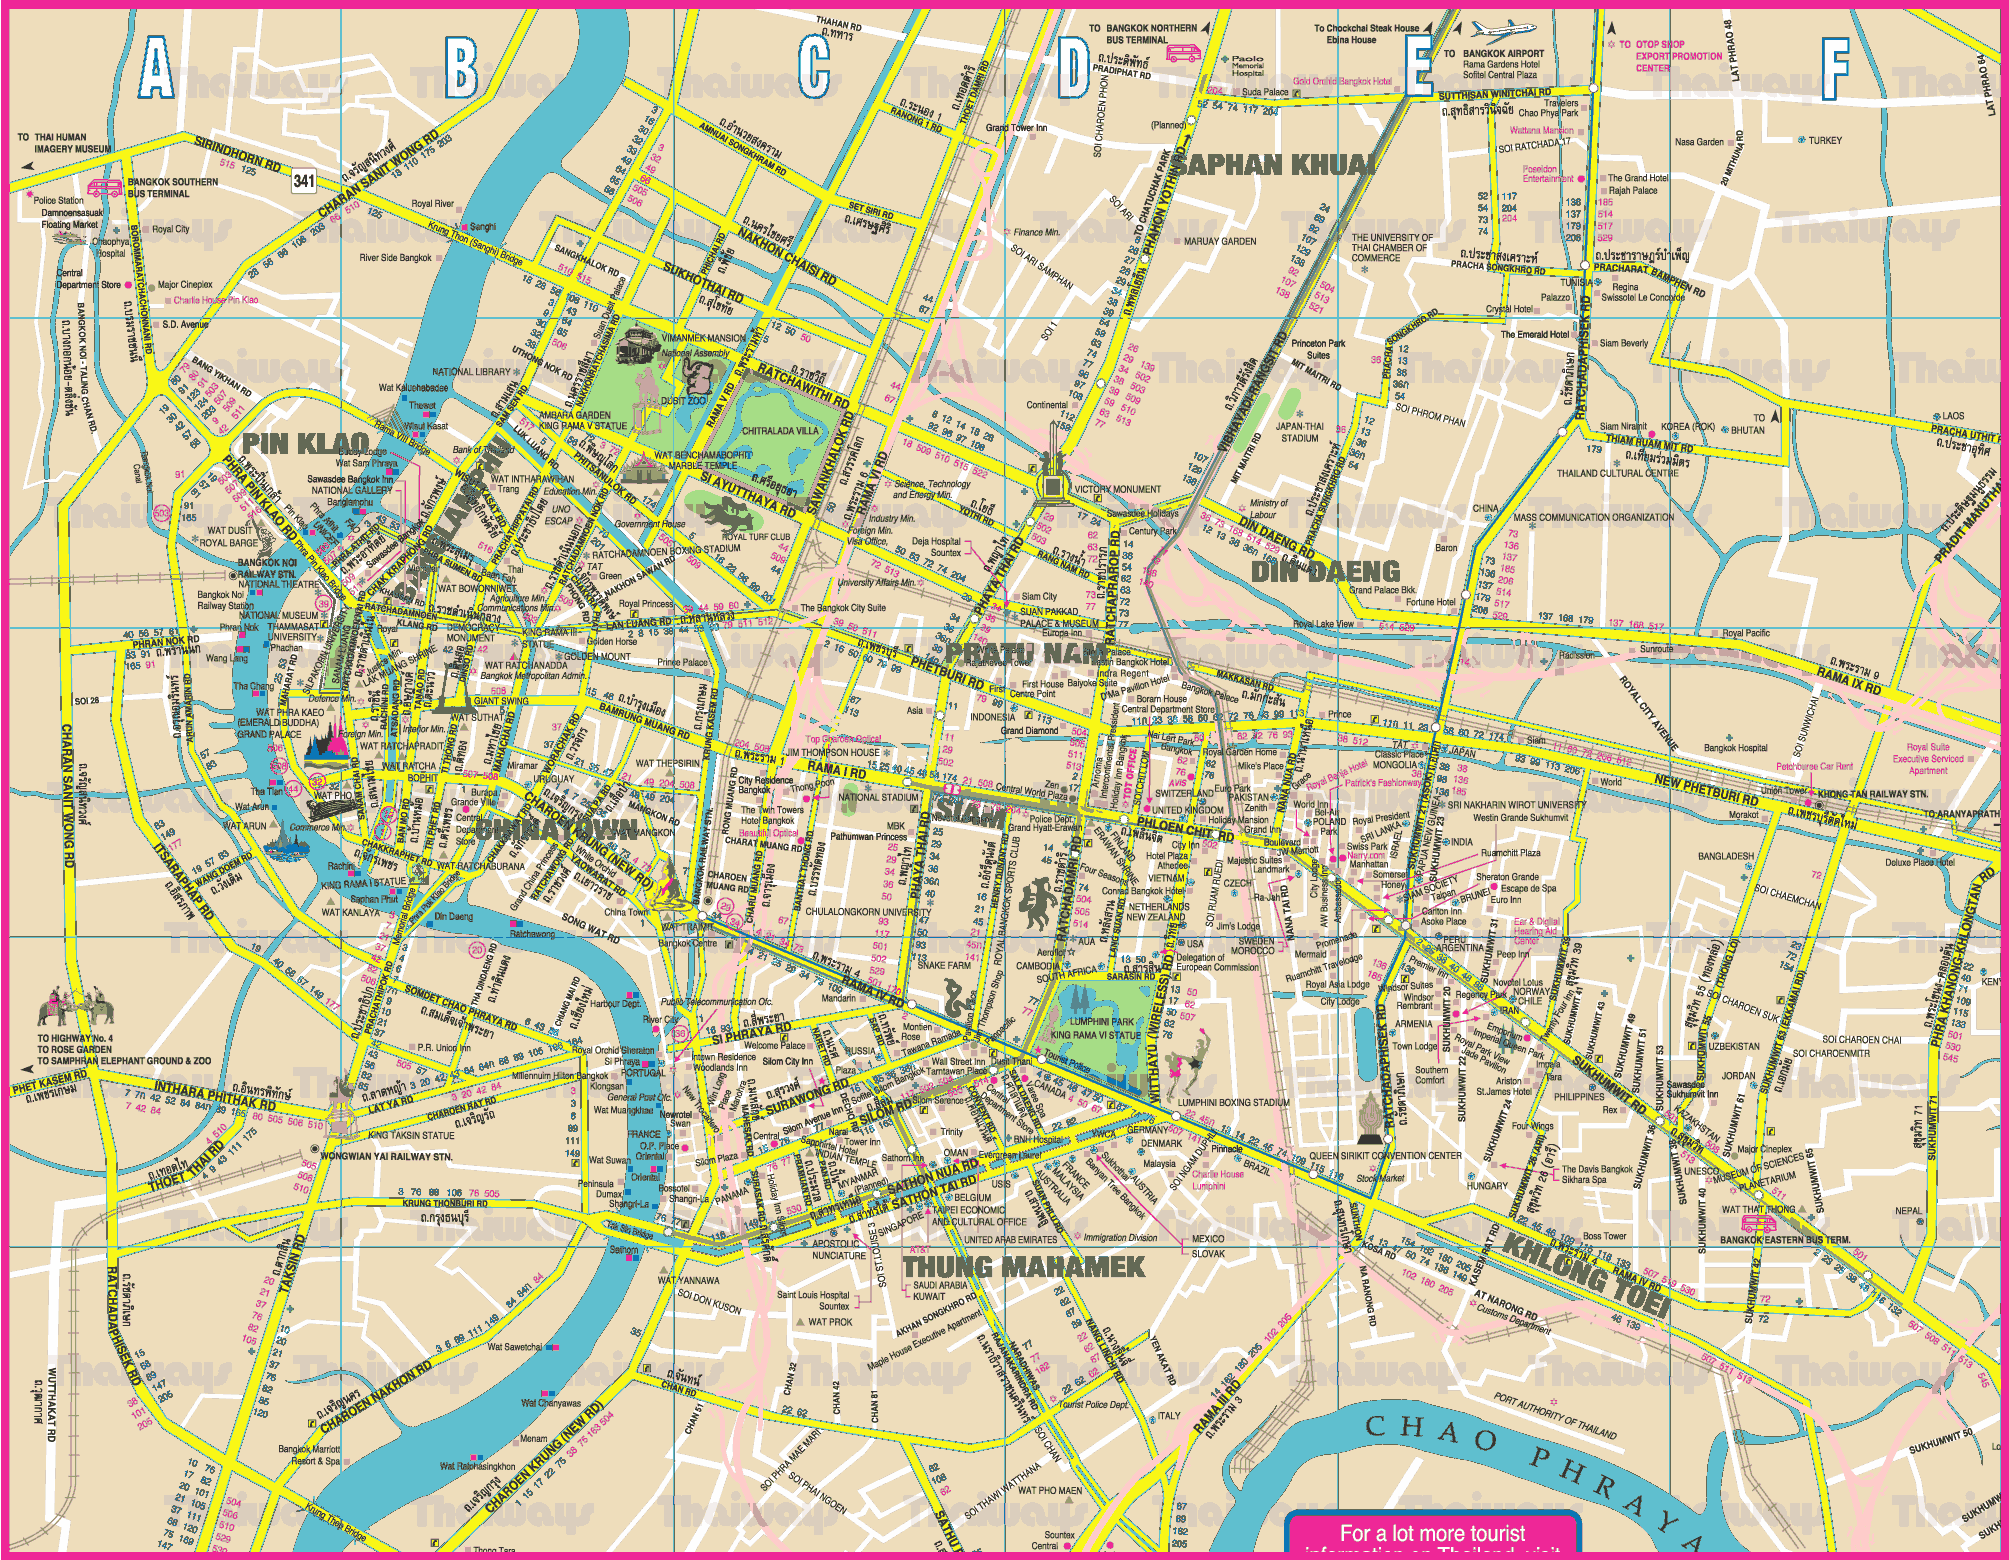 Bangkok Map - Detailed City and Metro Maps of Bangkok for ...